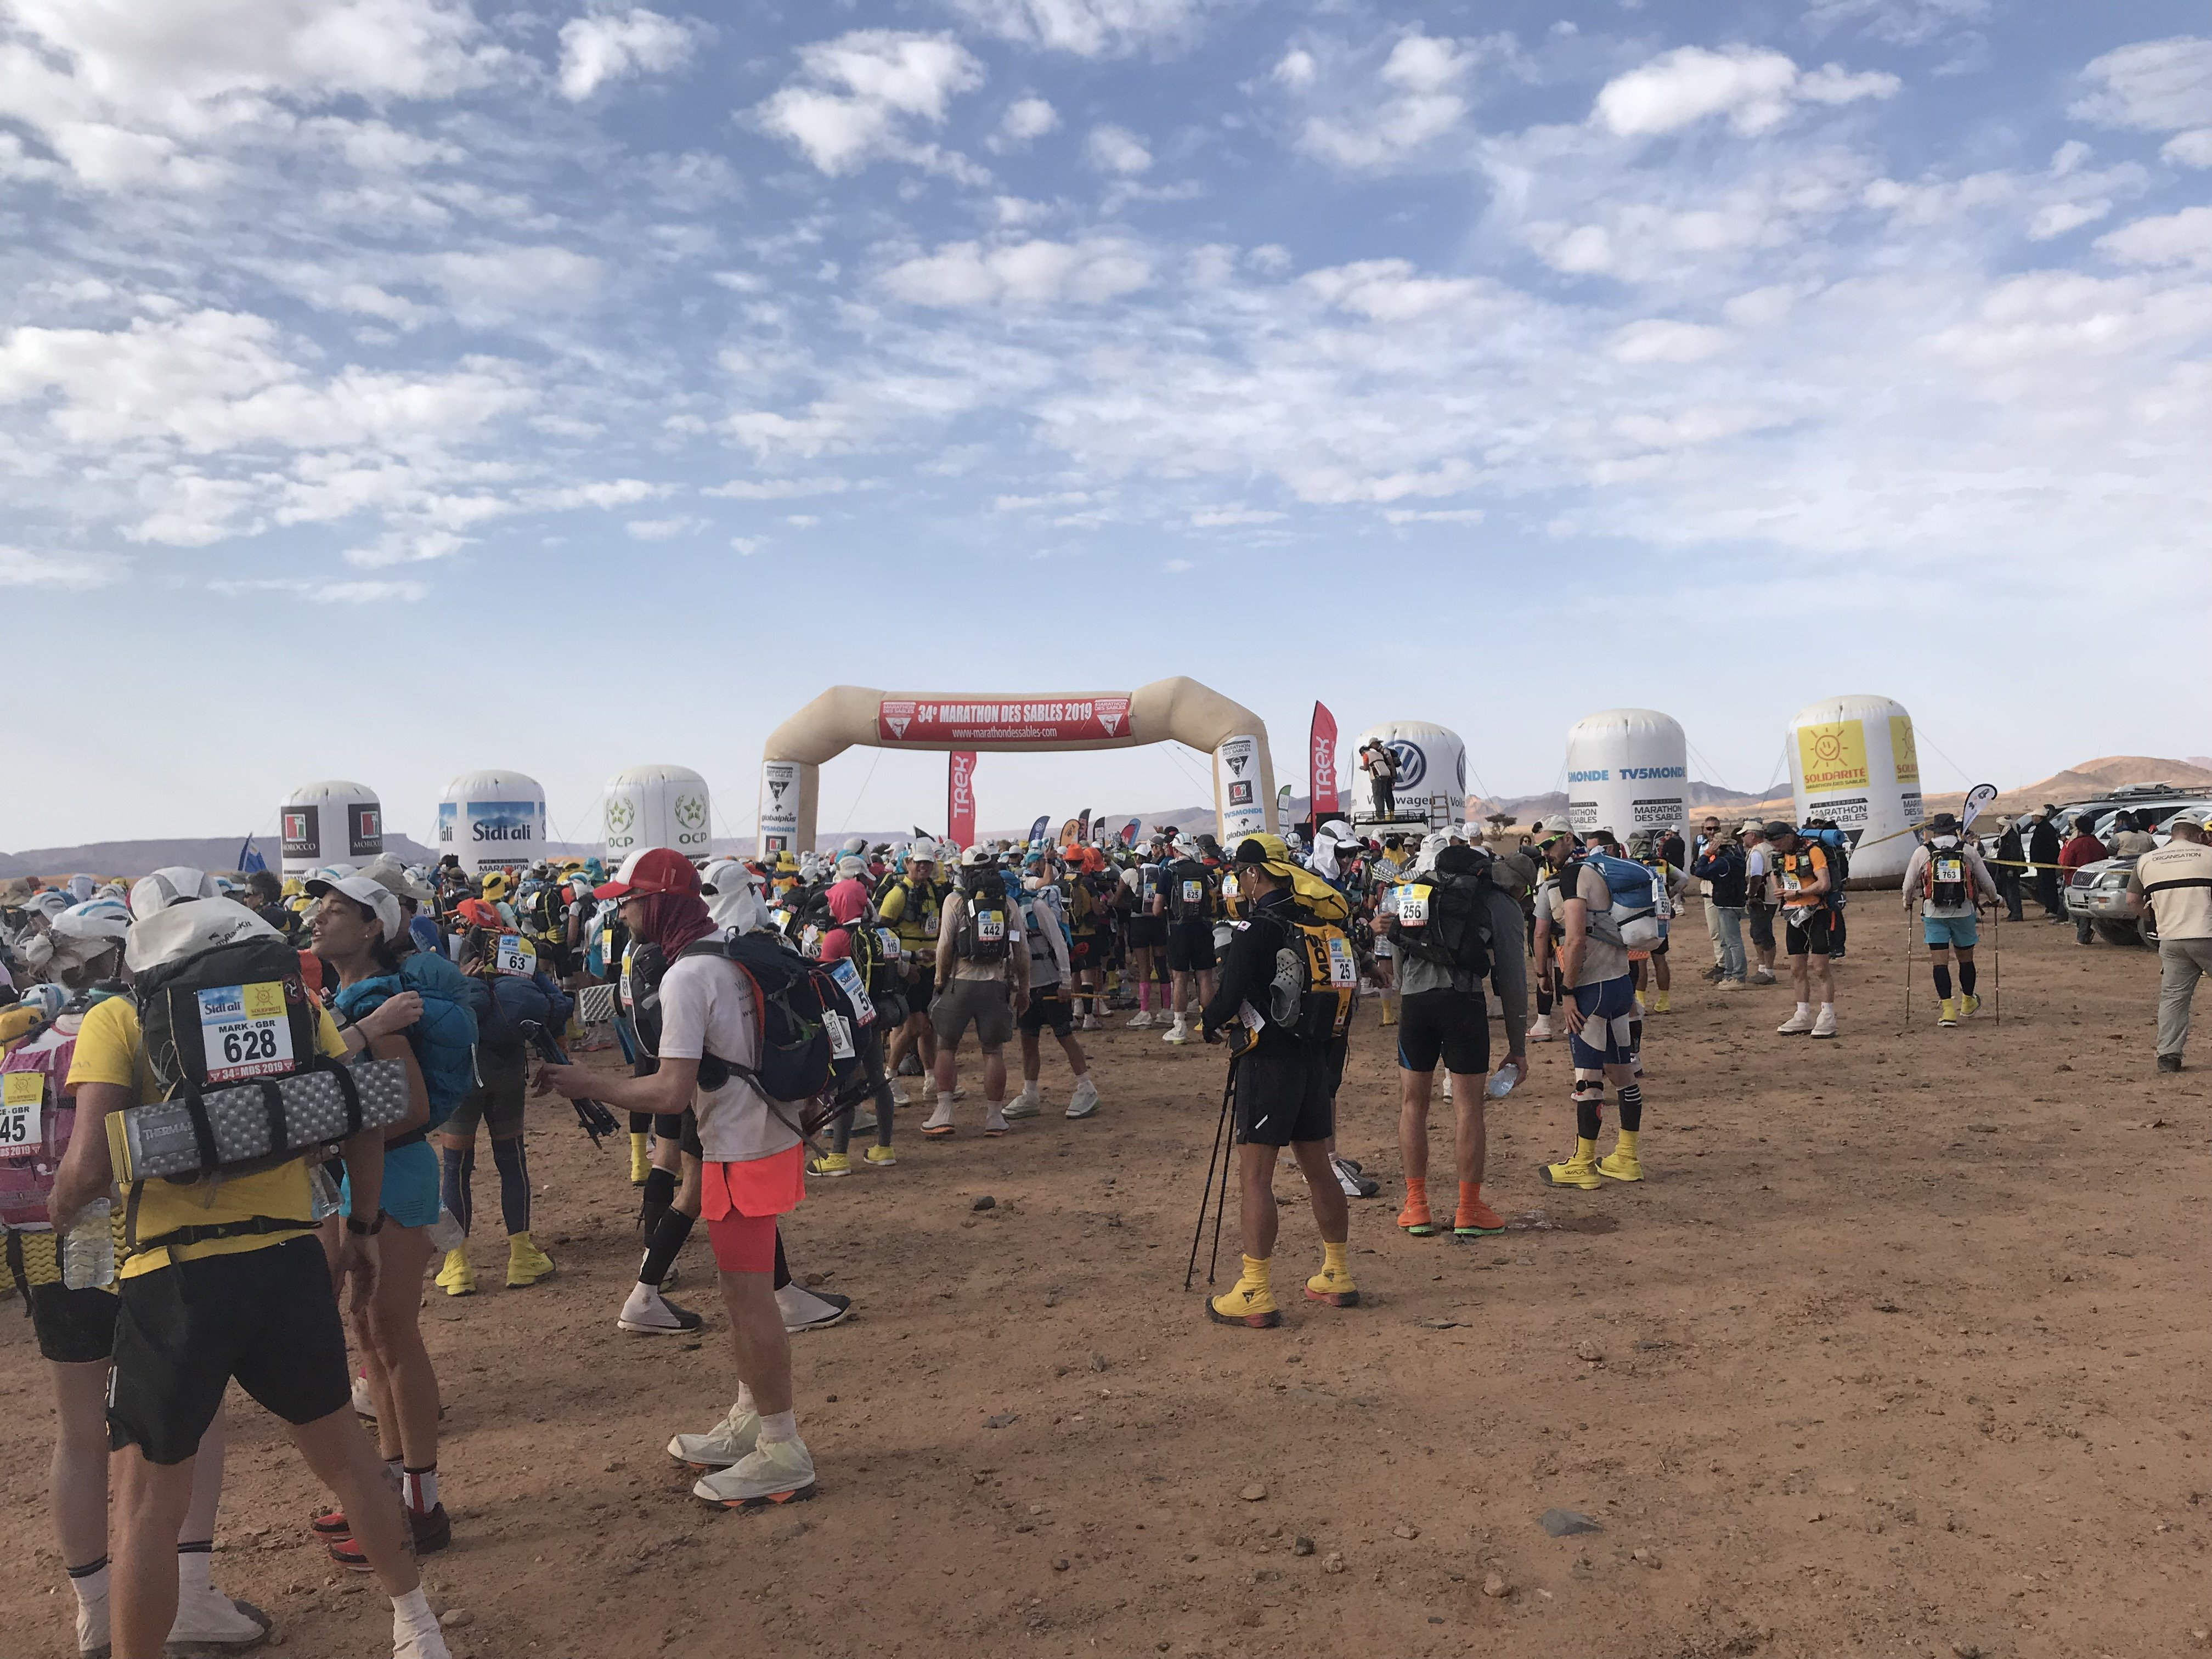 Marathon Des Sables starting point